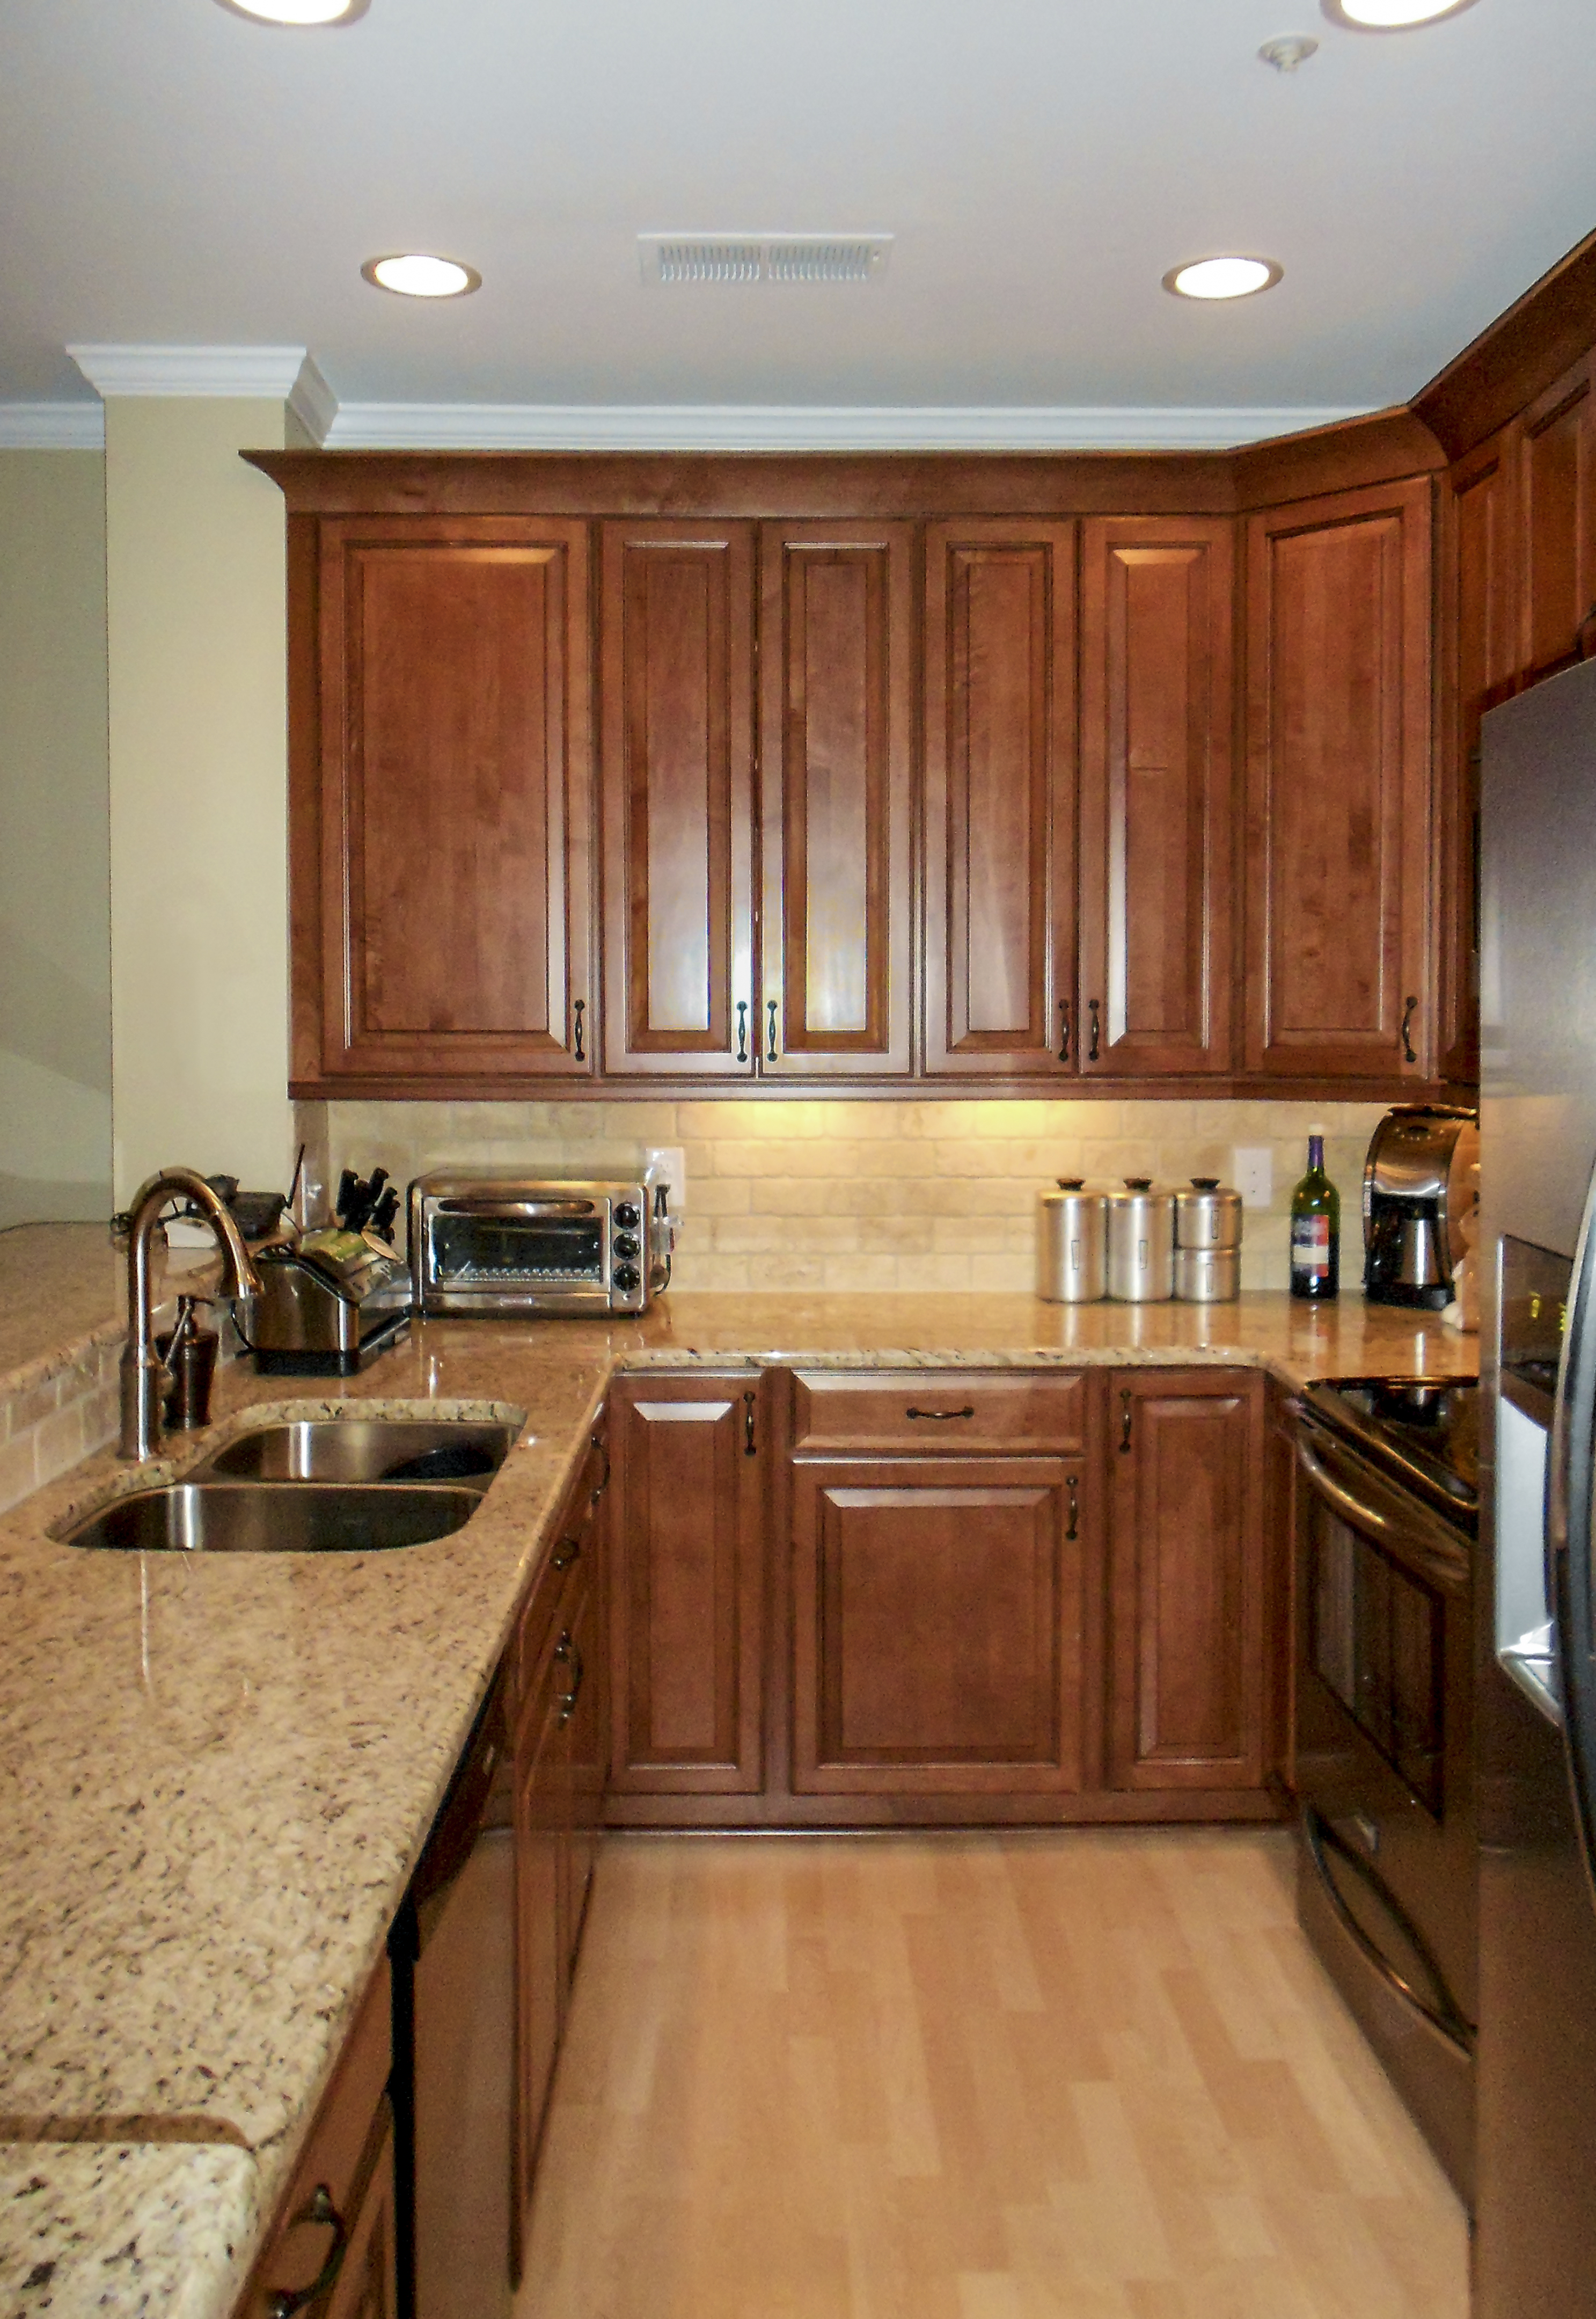 Kitchen design and kitchen remodel by Allen David Cabinetry-(980) 722-9186